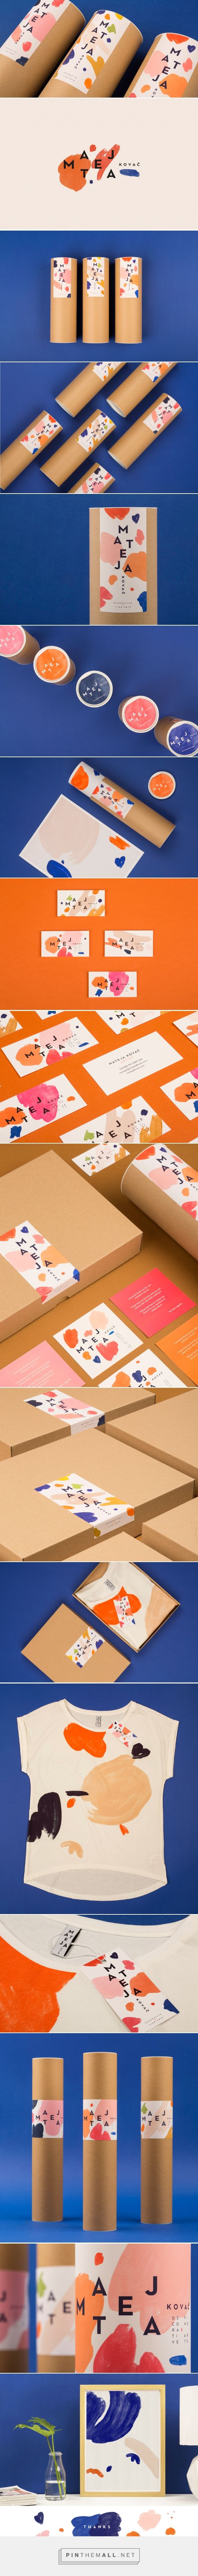 MATEJA KOVAČ Illustrator Branding by Mireldy Design | Fivestar Branding Agency – Design and Branding Agency & Curated Inspiration Gallery